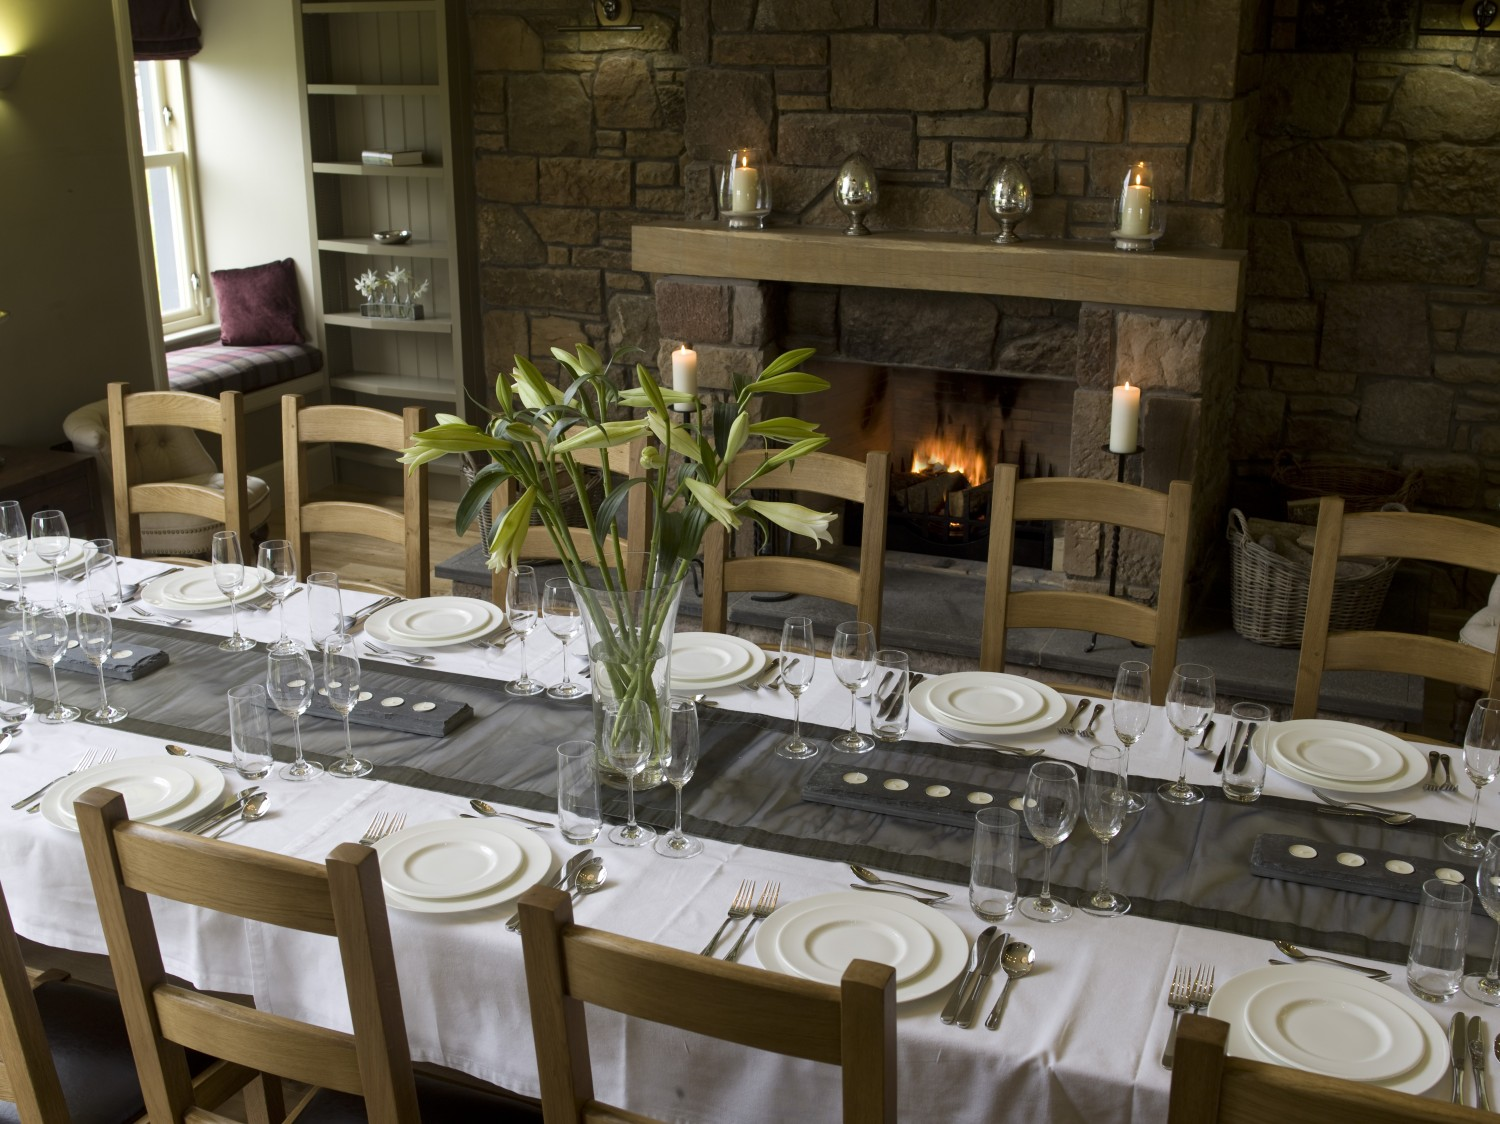 All 16 guests in the double heighted dining hall